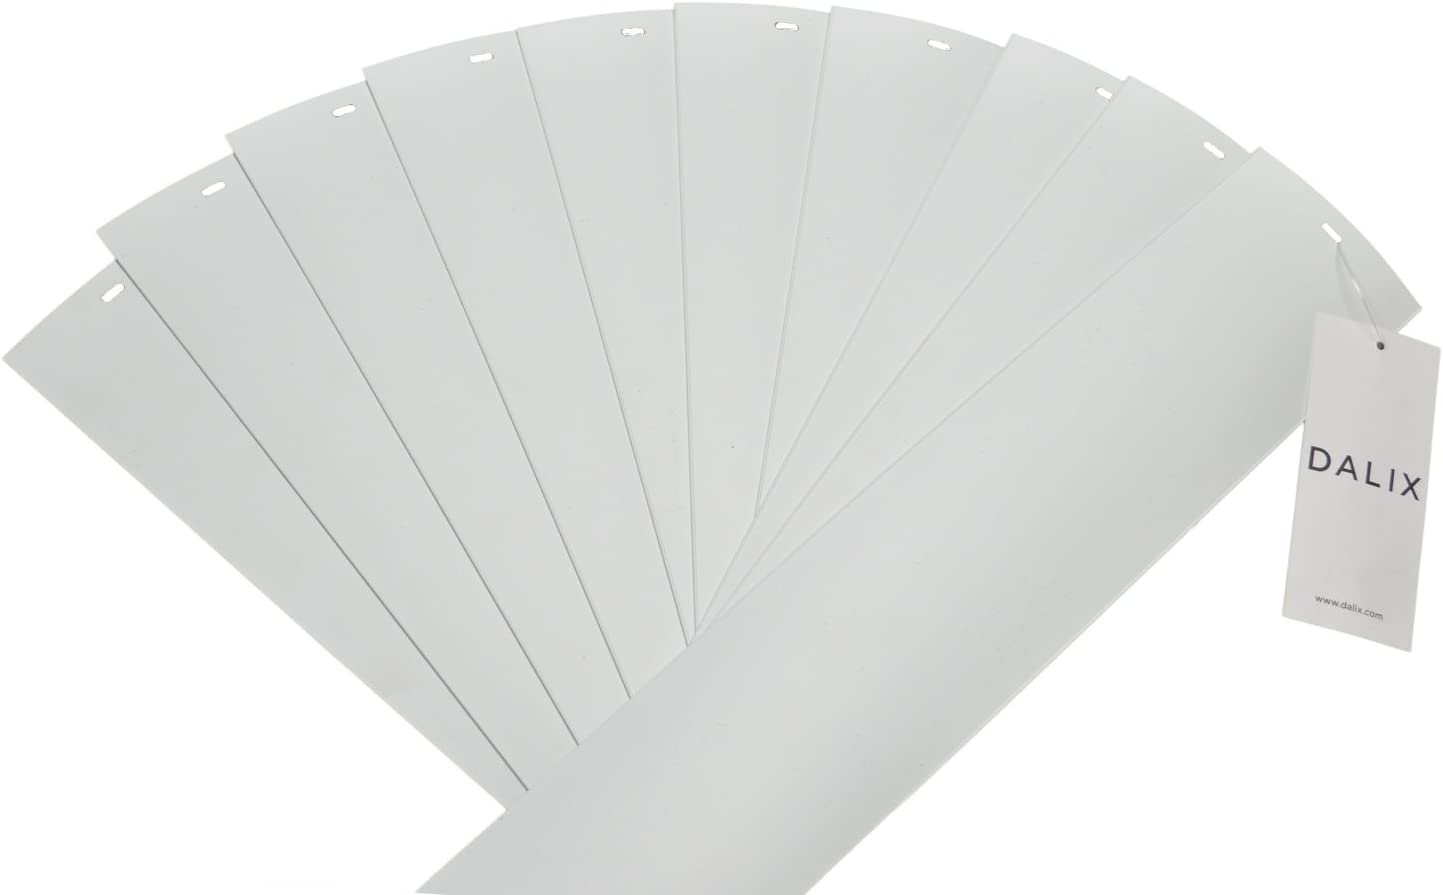 DALIX PVC Vertical Blind Replacement Slats Curved Smooth White 82.5 x 3.5 (10-Pack)